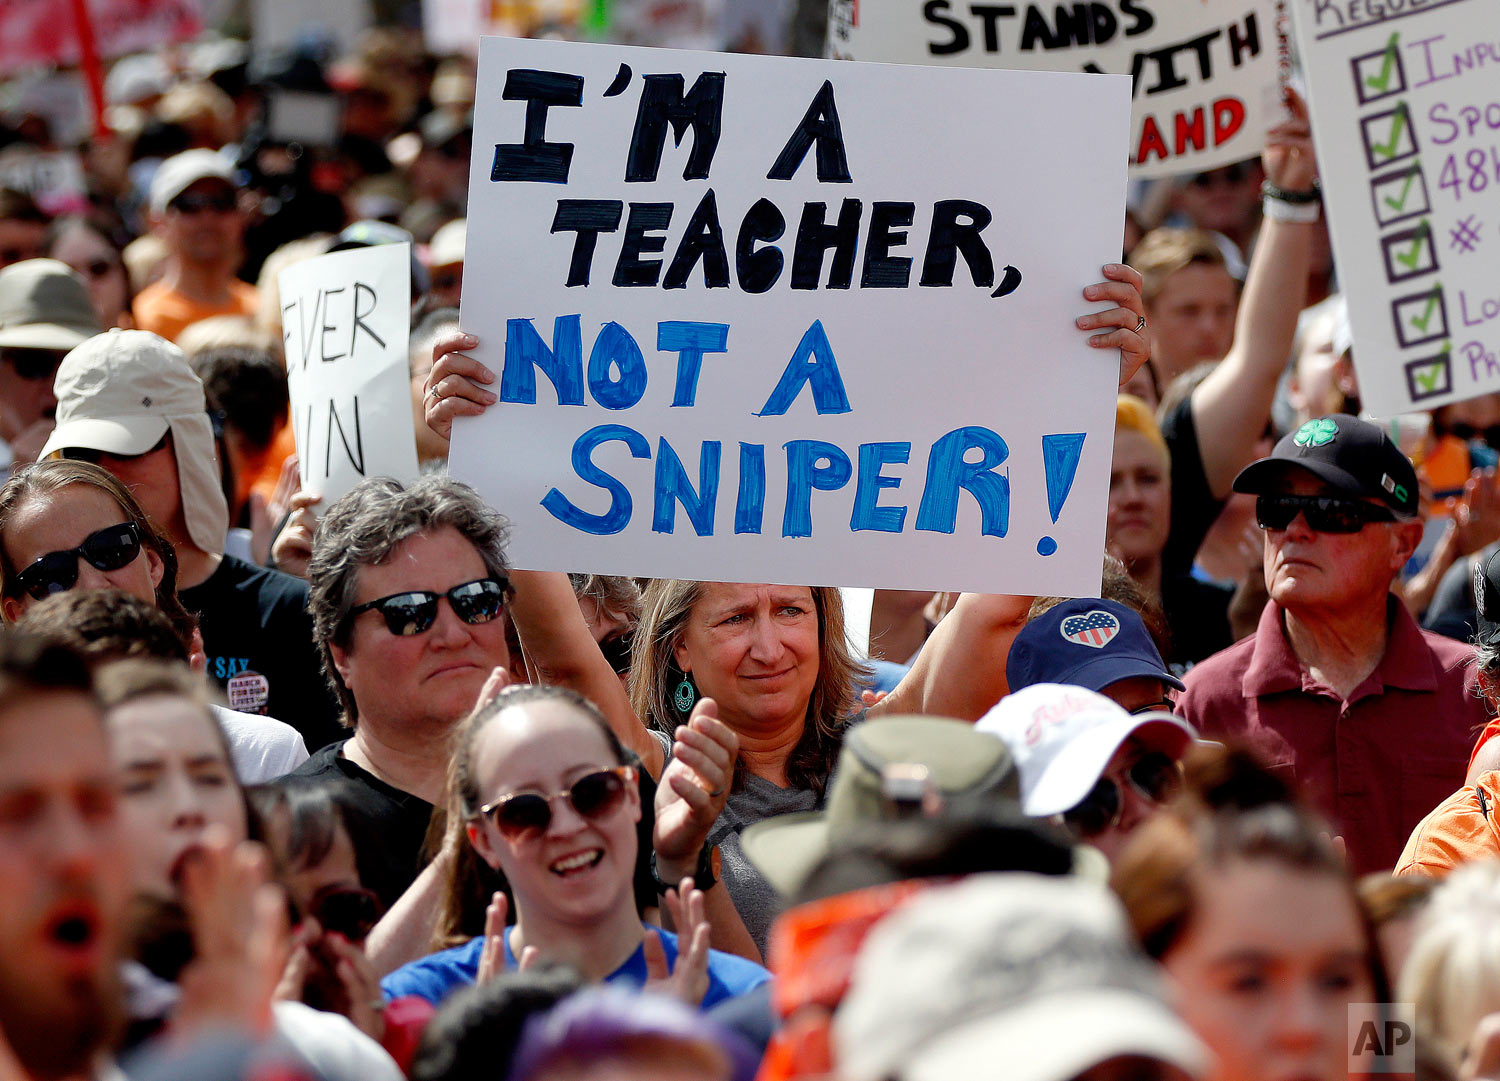 """People participate in a """"March For Our Lives"""" rally at the state Capitol, Saturday, March 24, 2018, in Phoenix. Students and activists across the country planned events Saturday in conjunction with a Washington march spearheaded by teens from Marjory Stoneman Douglas High School in Parkland, Fla., where over a dozen people were killed in February. (AP Photo/Matt York)"""